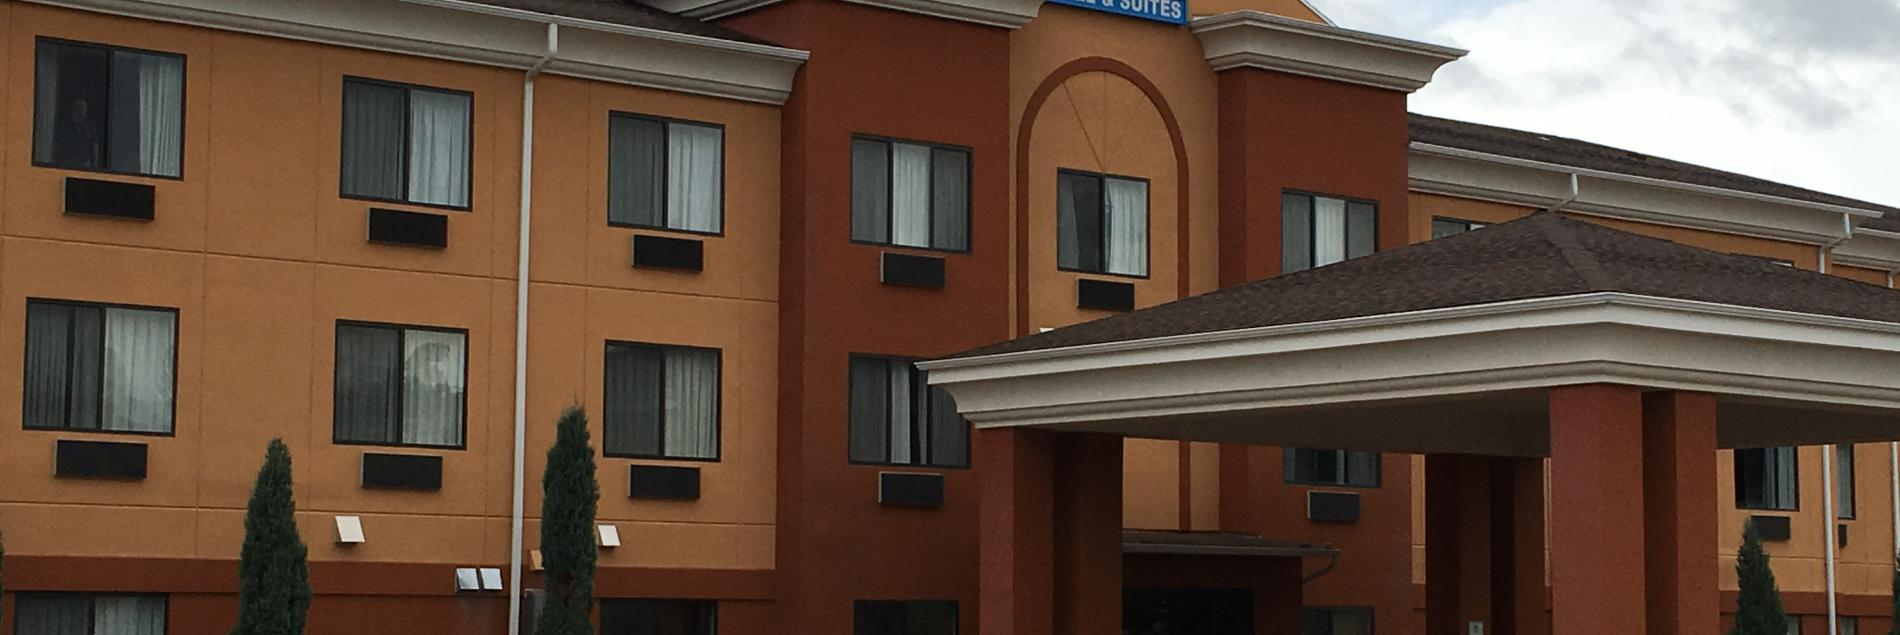 Stay USA Hotel & Suites